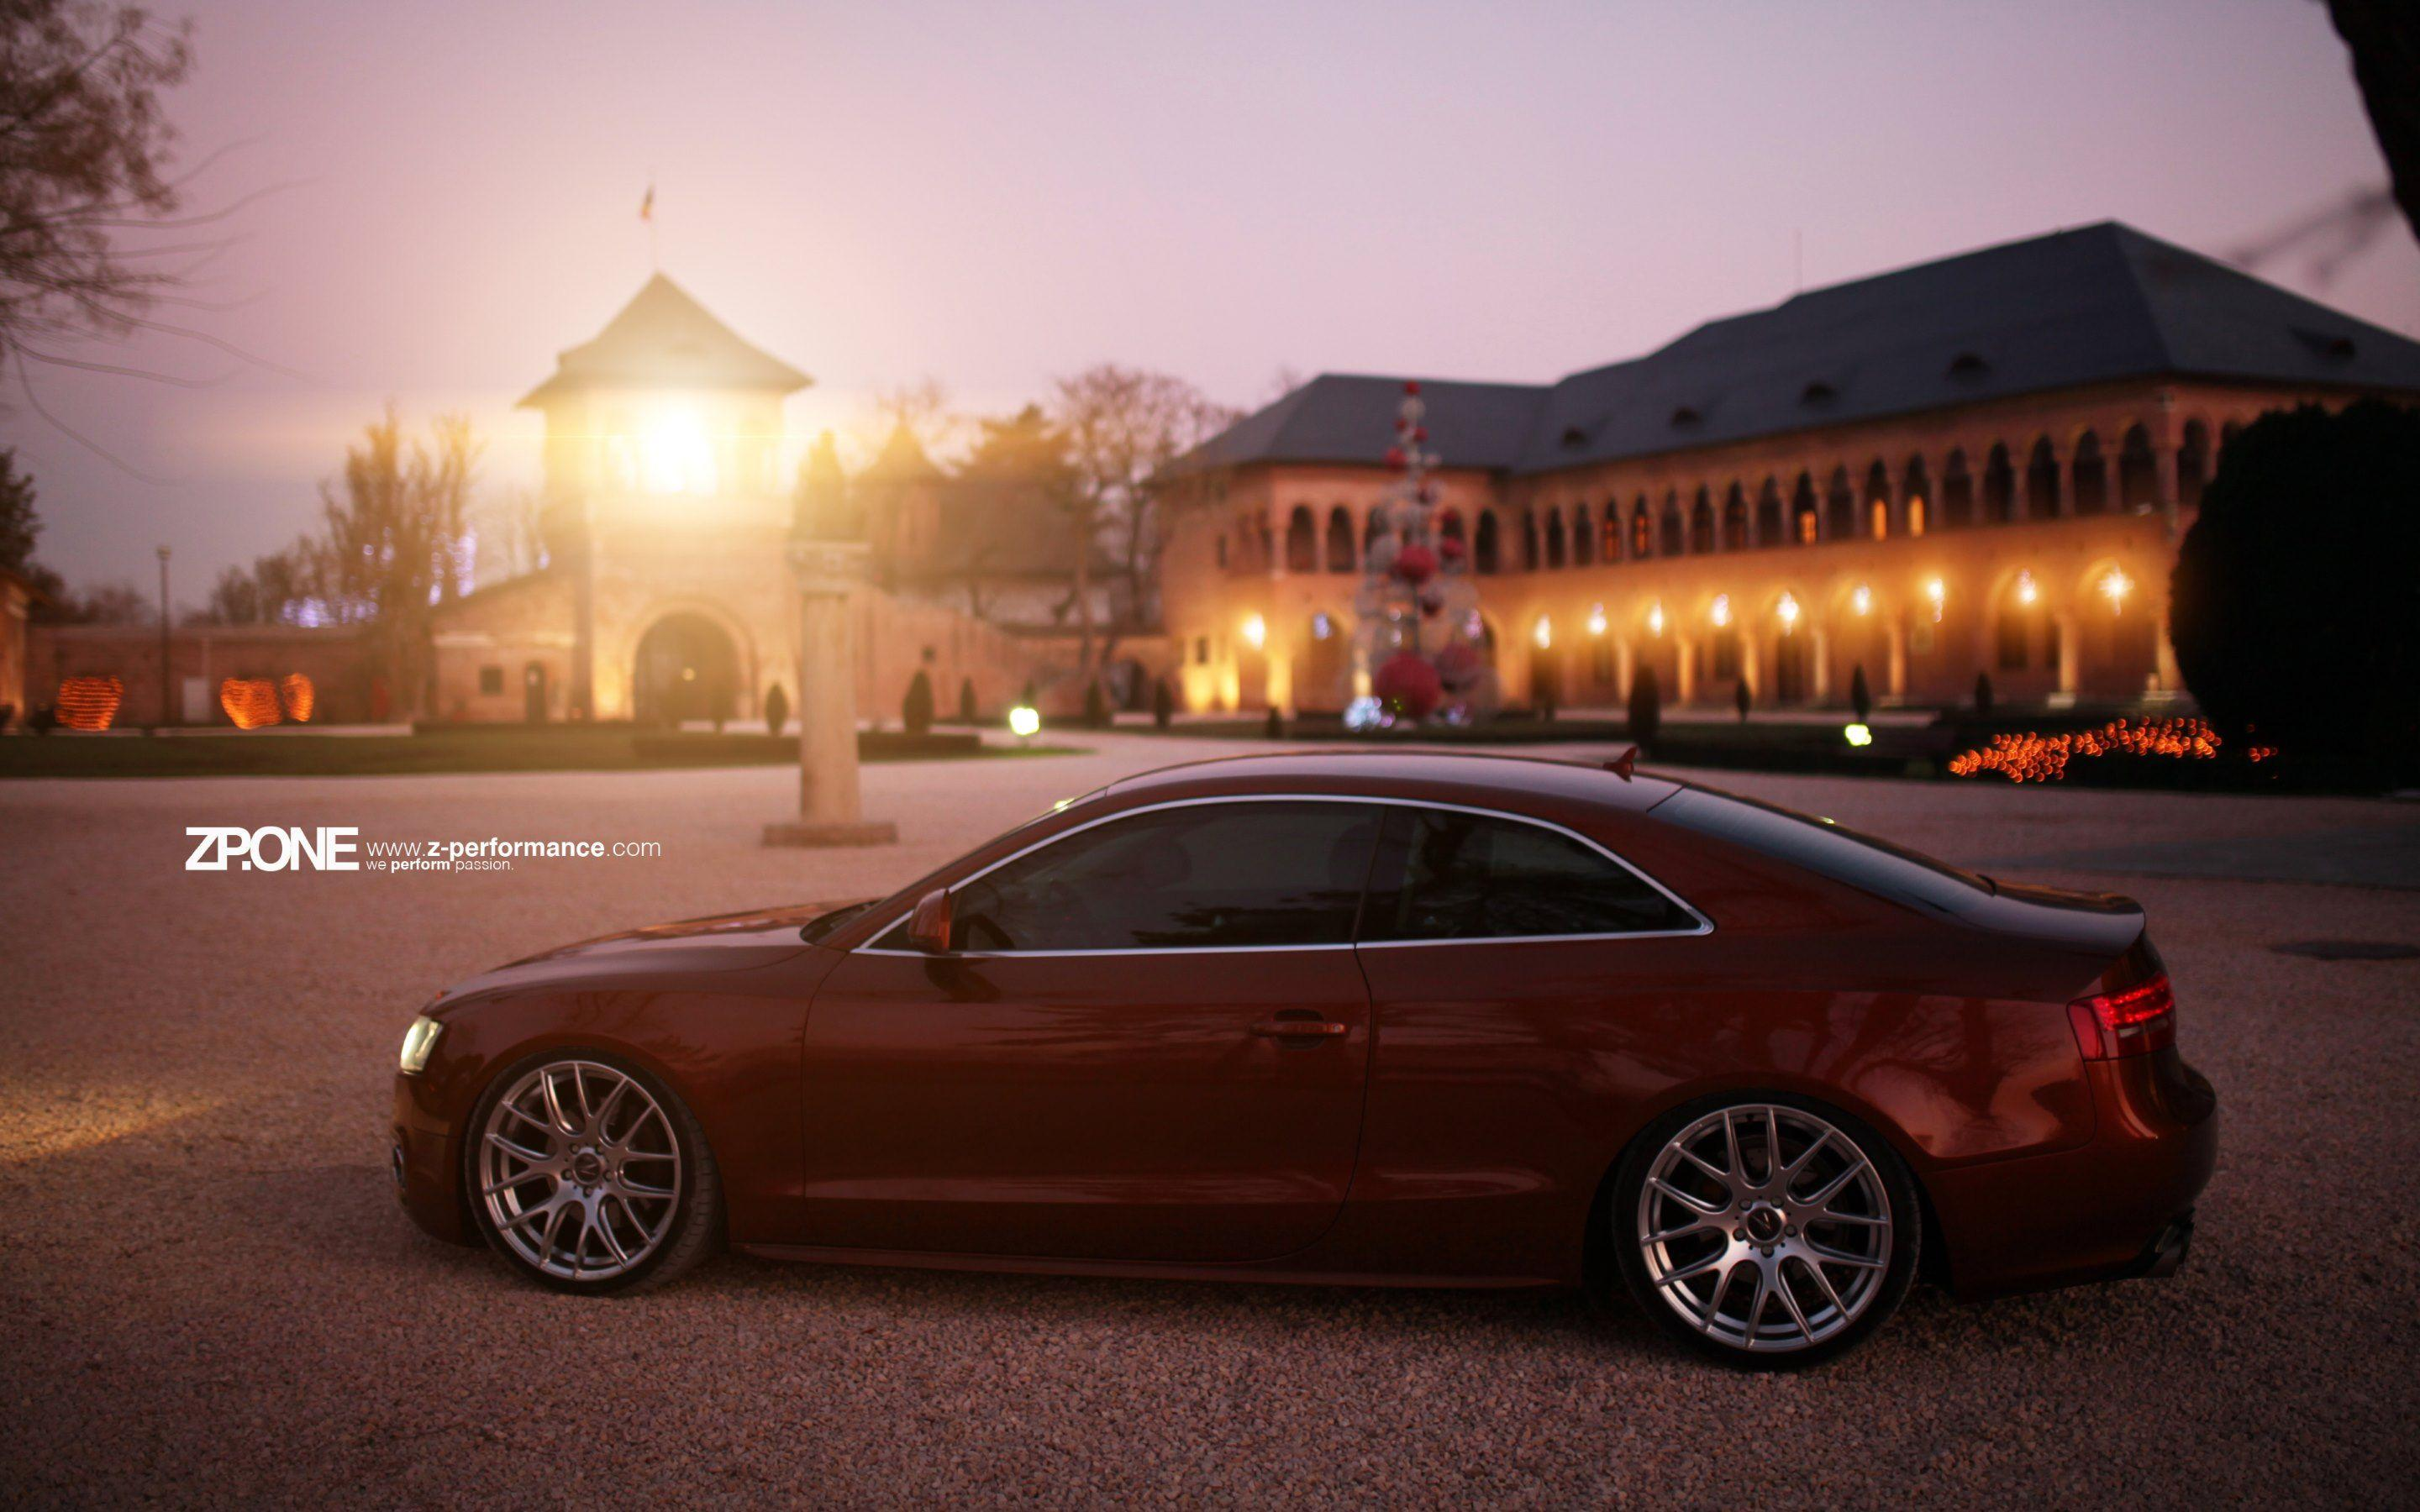 Audi A5 Wallpapers Group with 62 items